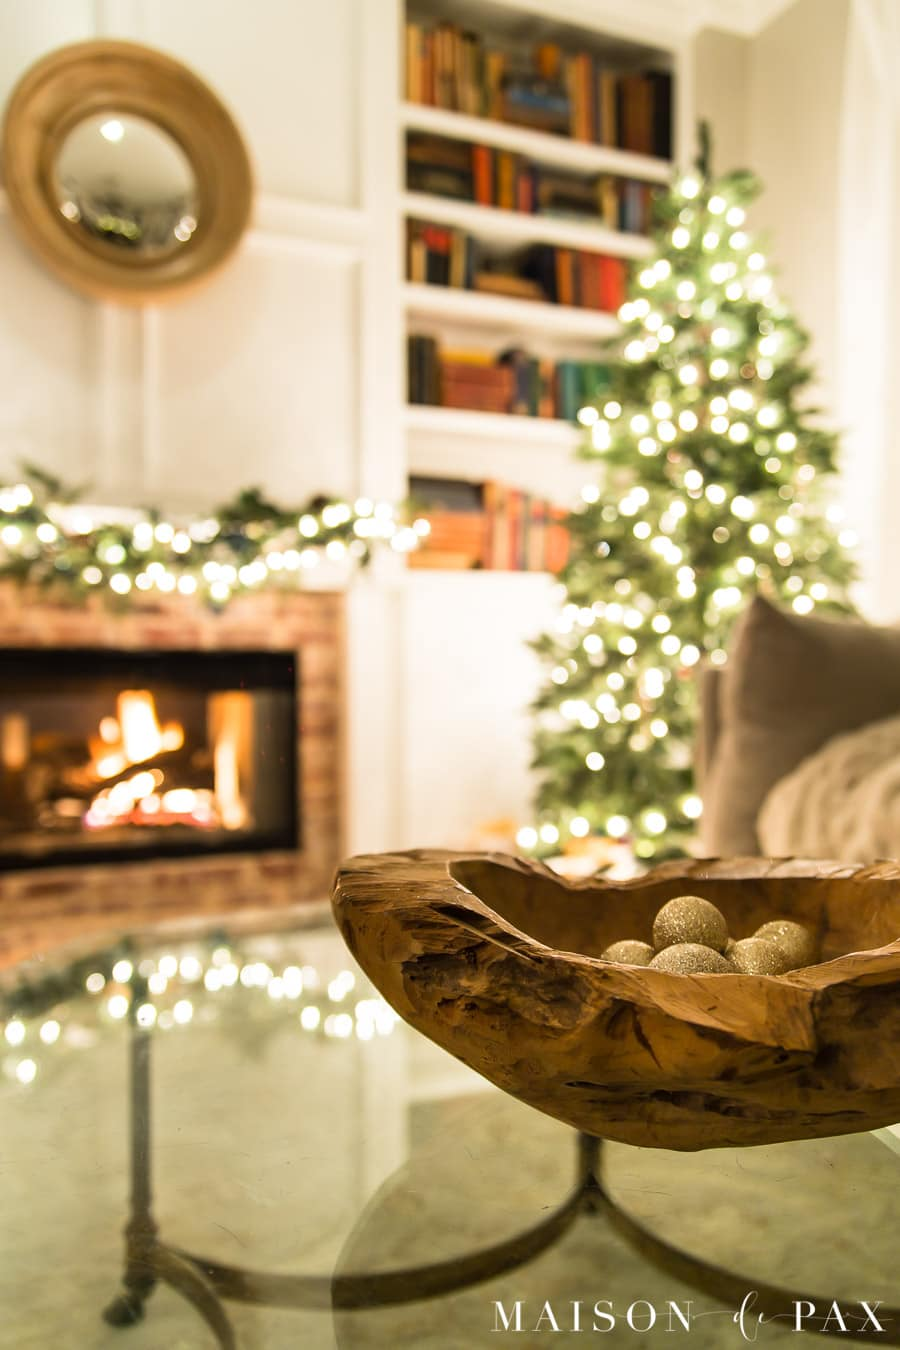 roaring fire in fireplace beside Christmas tree at night | Maison de Pax